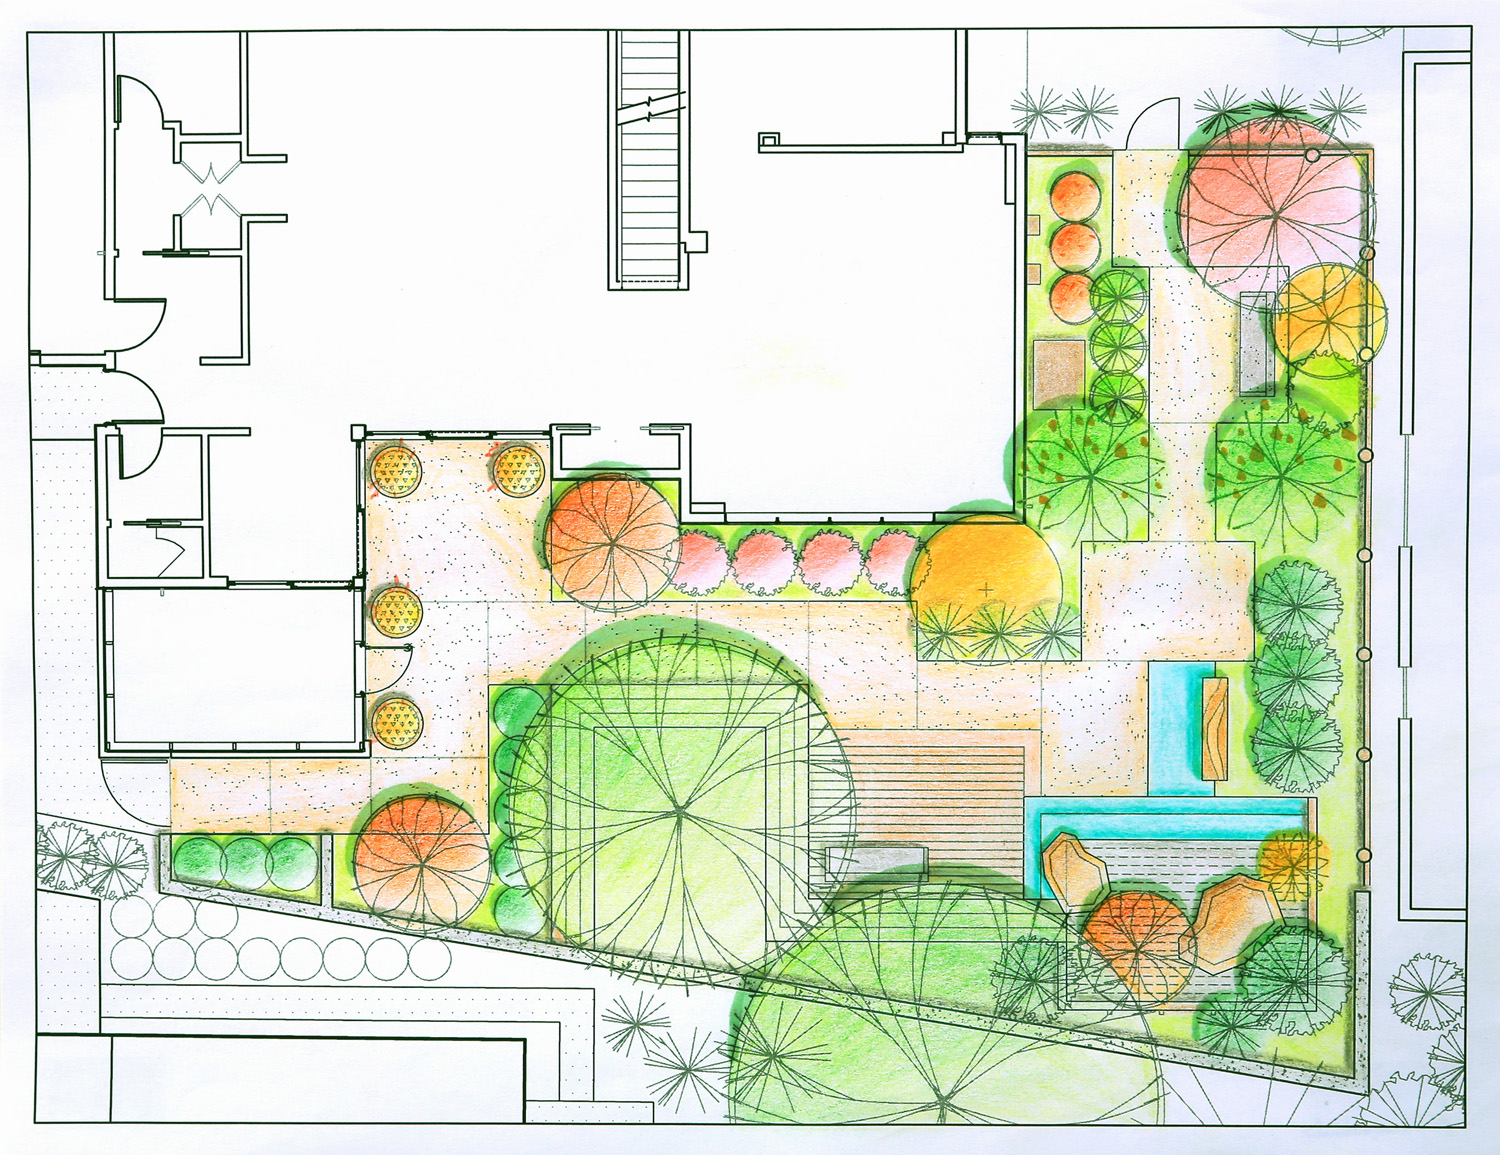 87 residential landscape design plans residential for Residential landscape plan